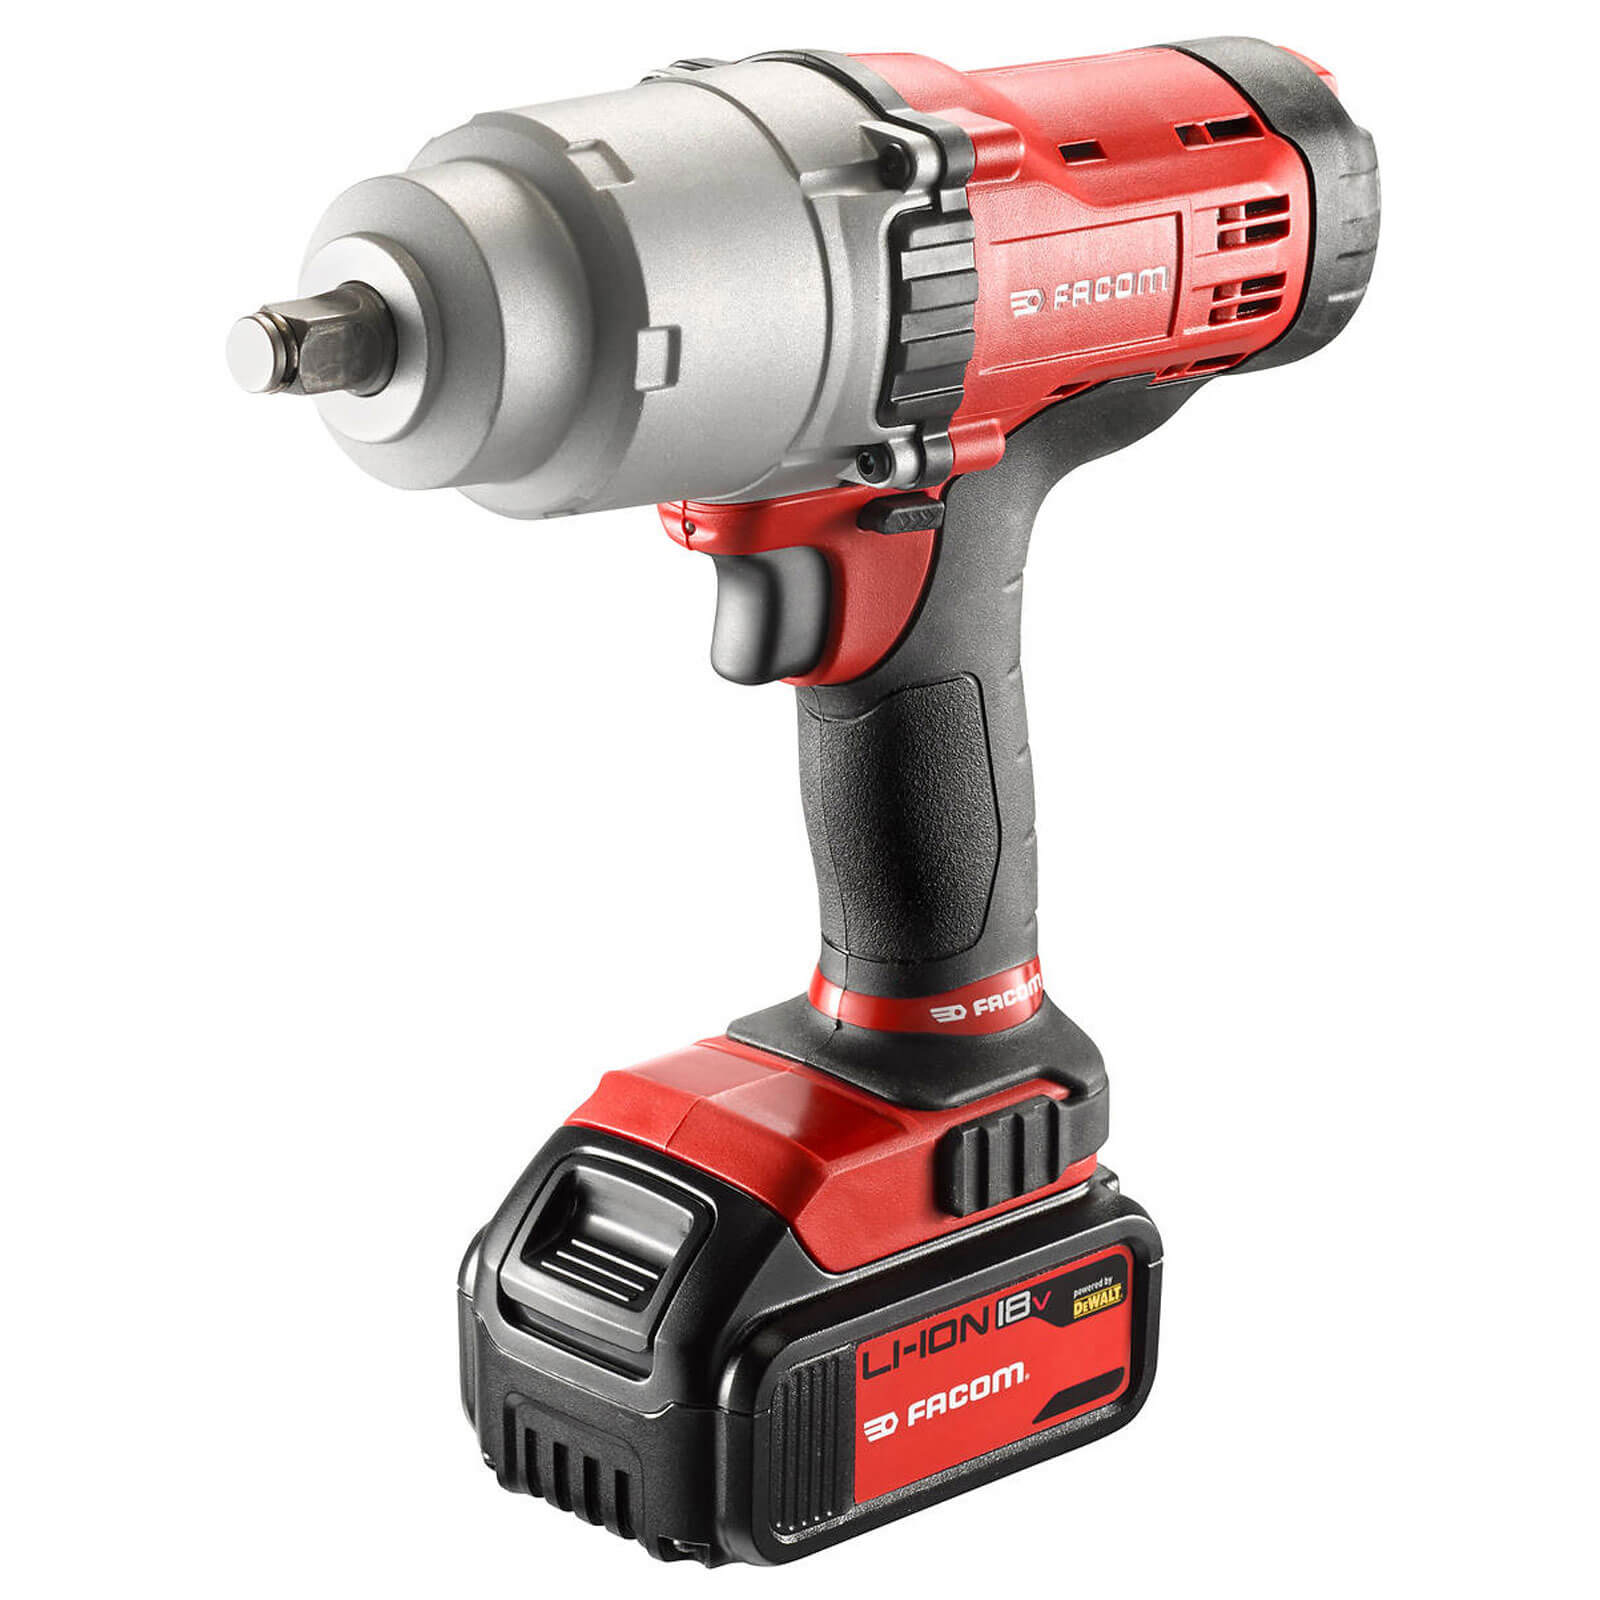 Facom CL3.C18S 18v Cordless 12&quot Square Drive Impact Wrench with 2 Lithium Ion Batteries 3ah